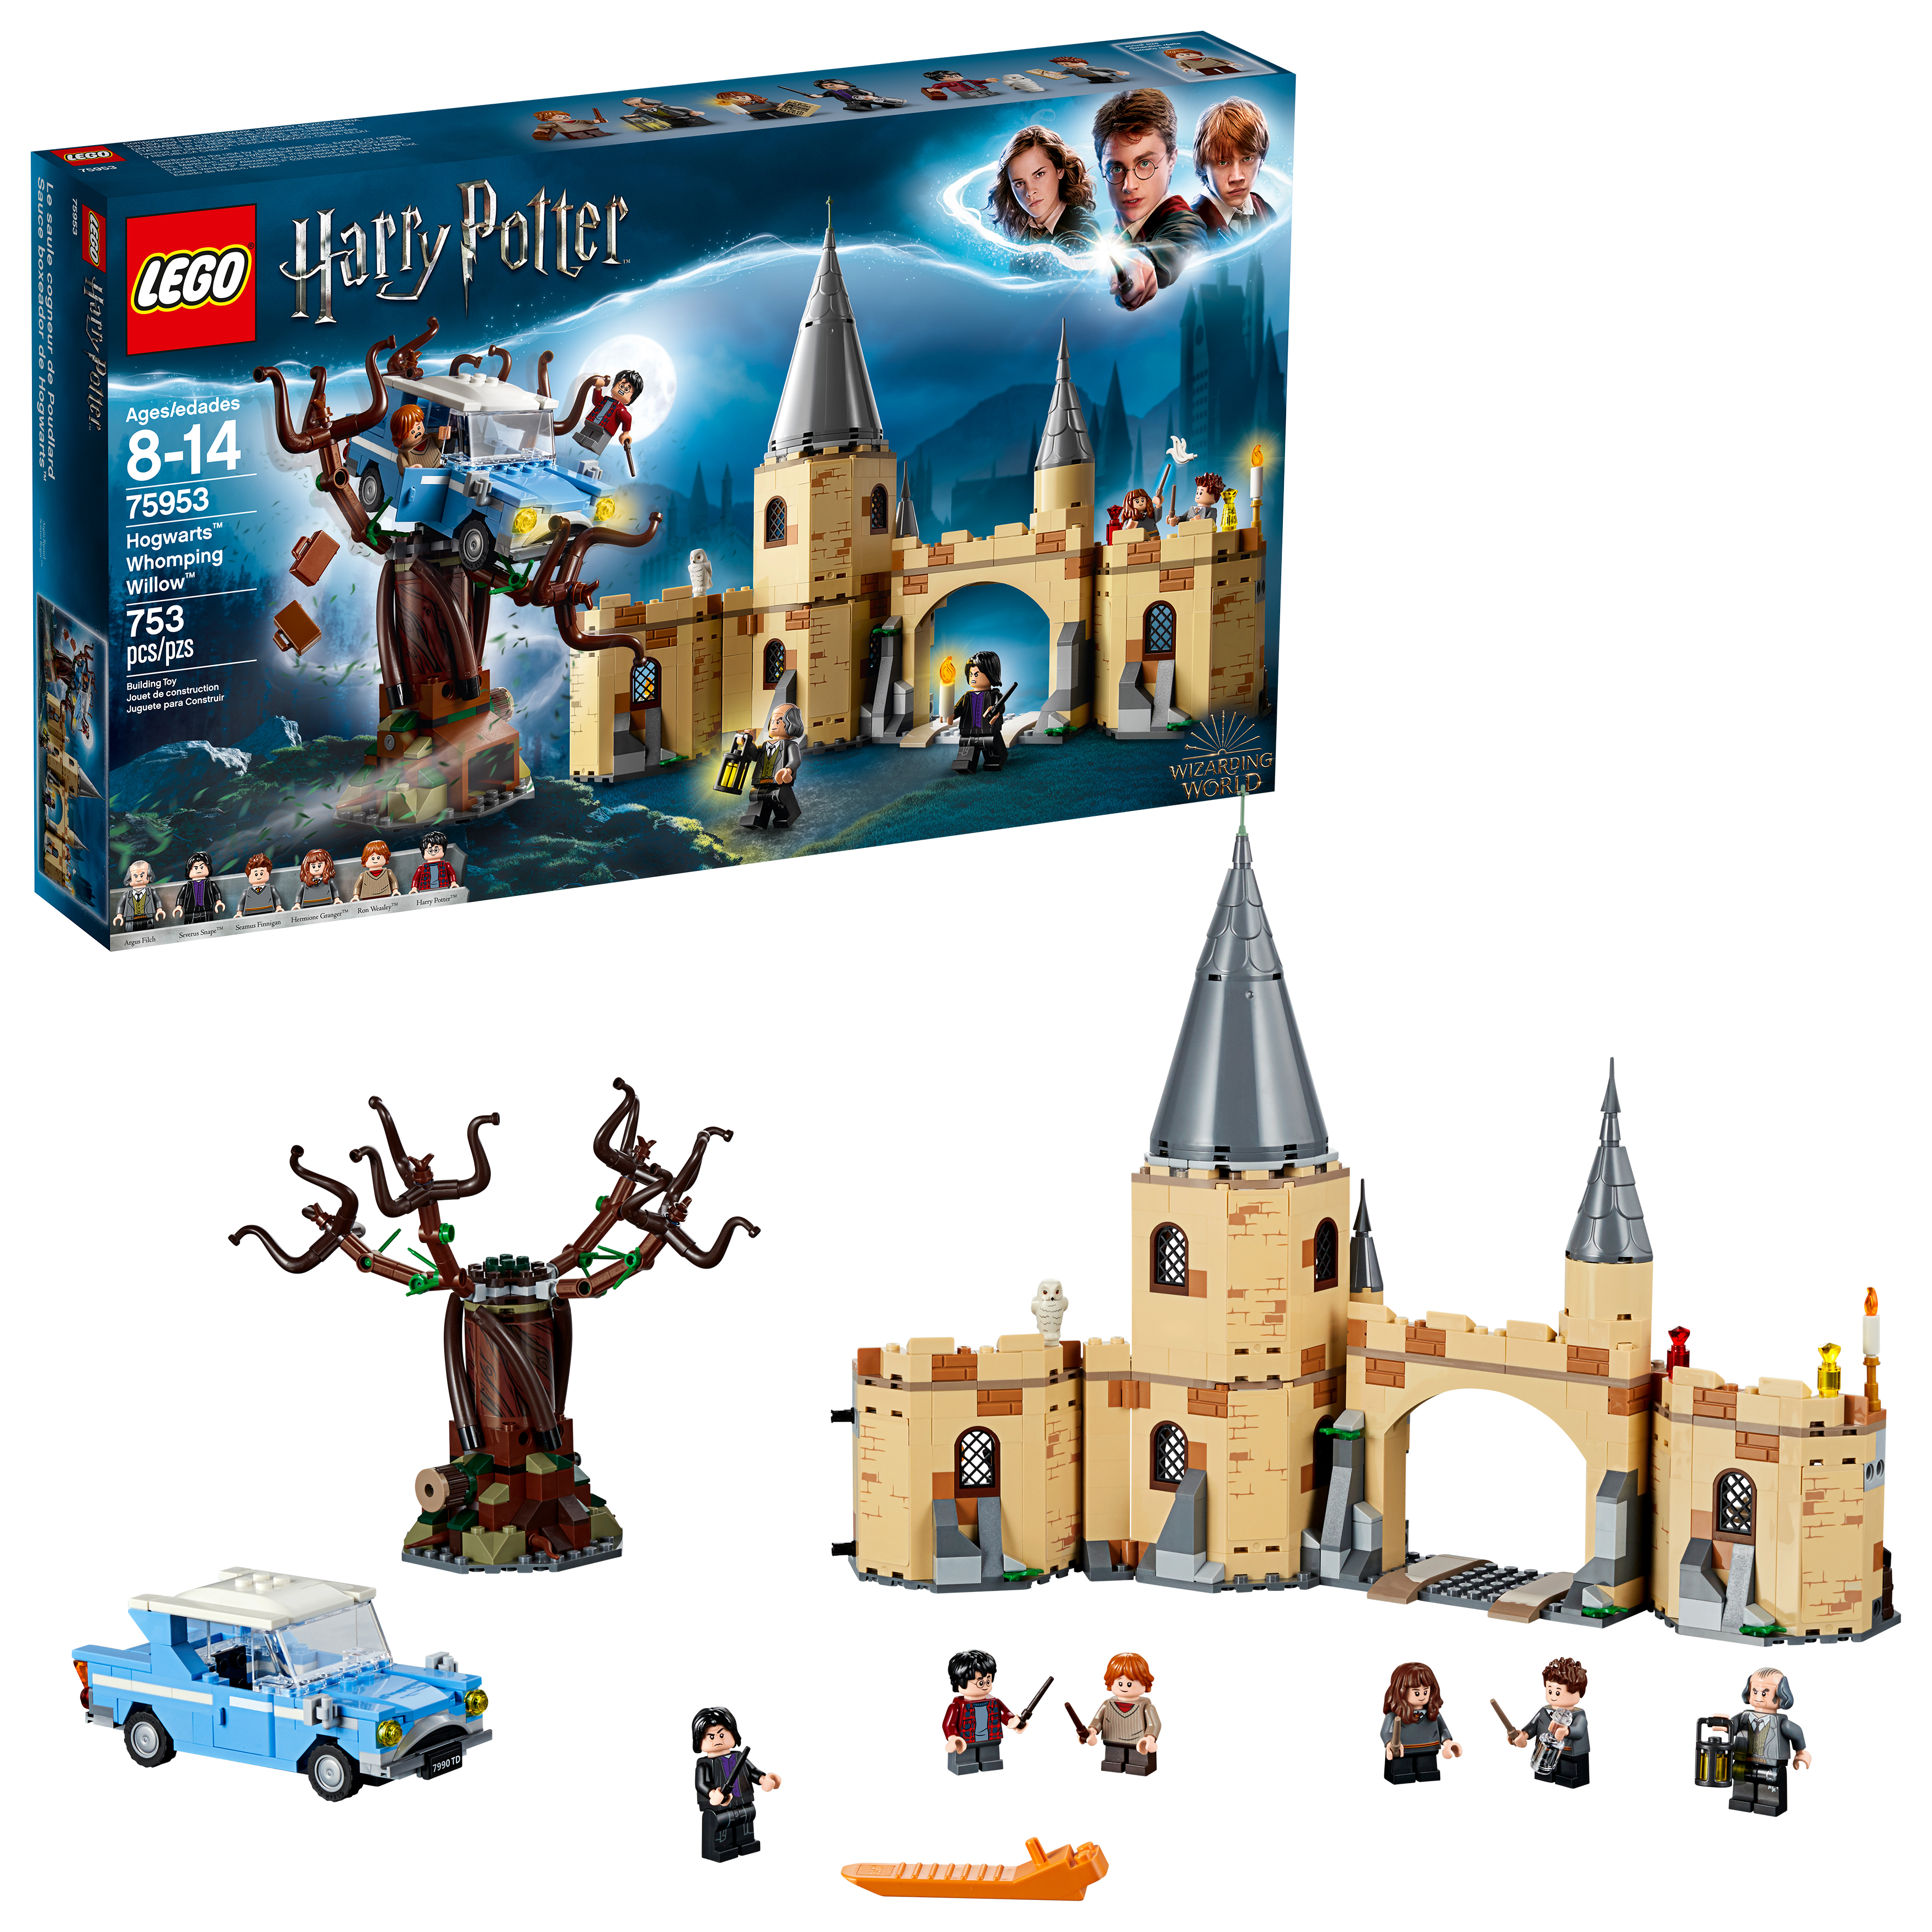 Lego Harry Potter Hogwarts Whomping Willow 75953 by LEGO System Inc